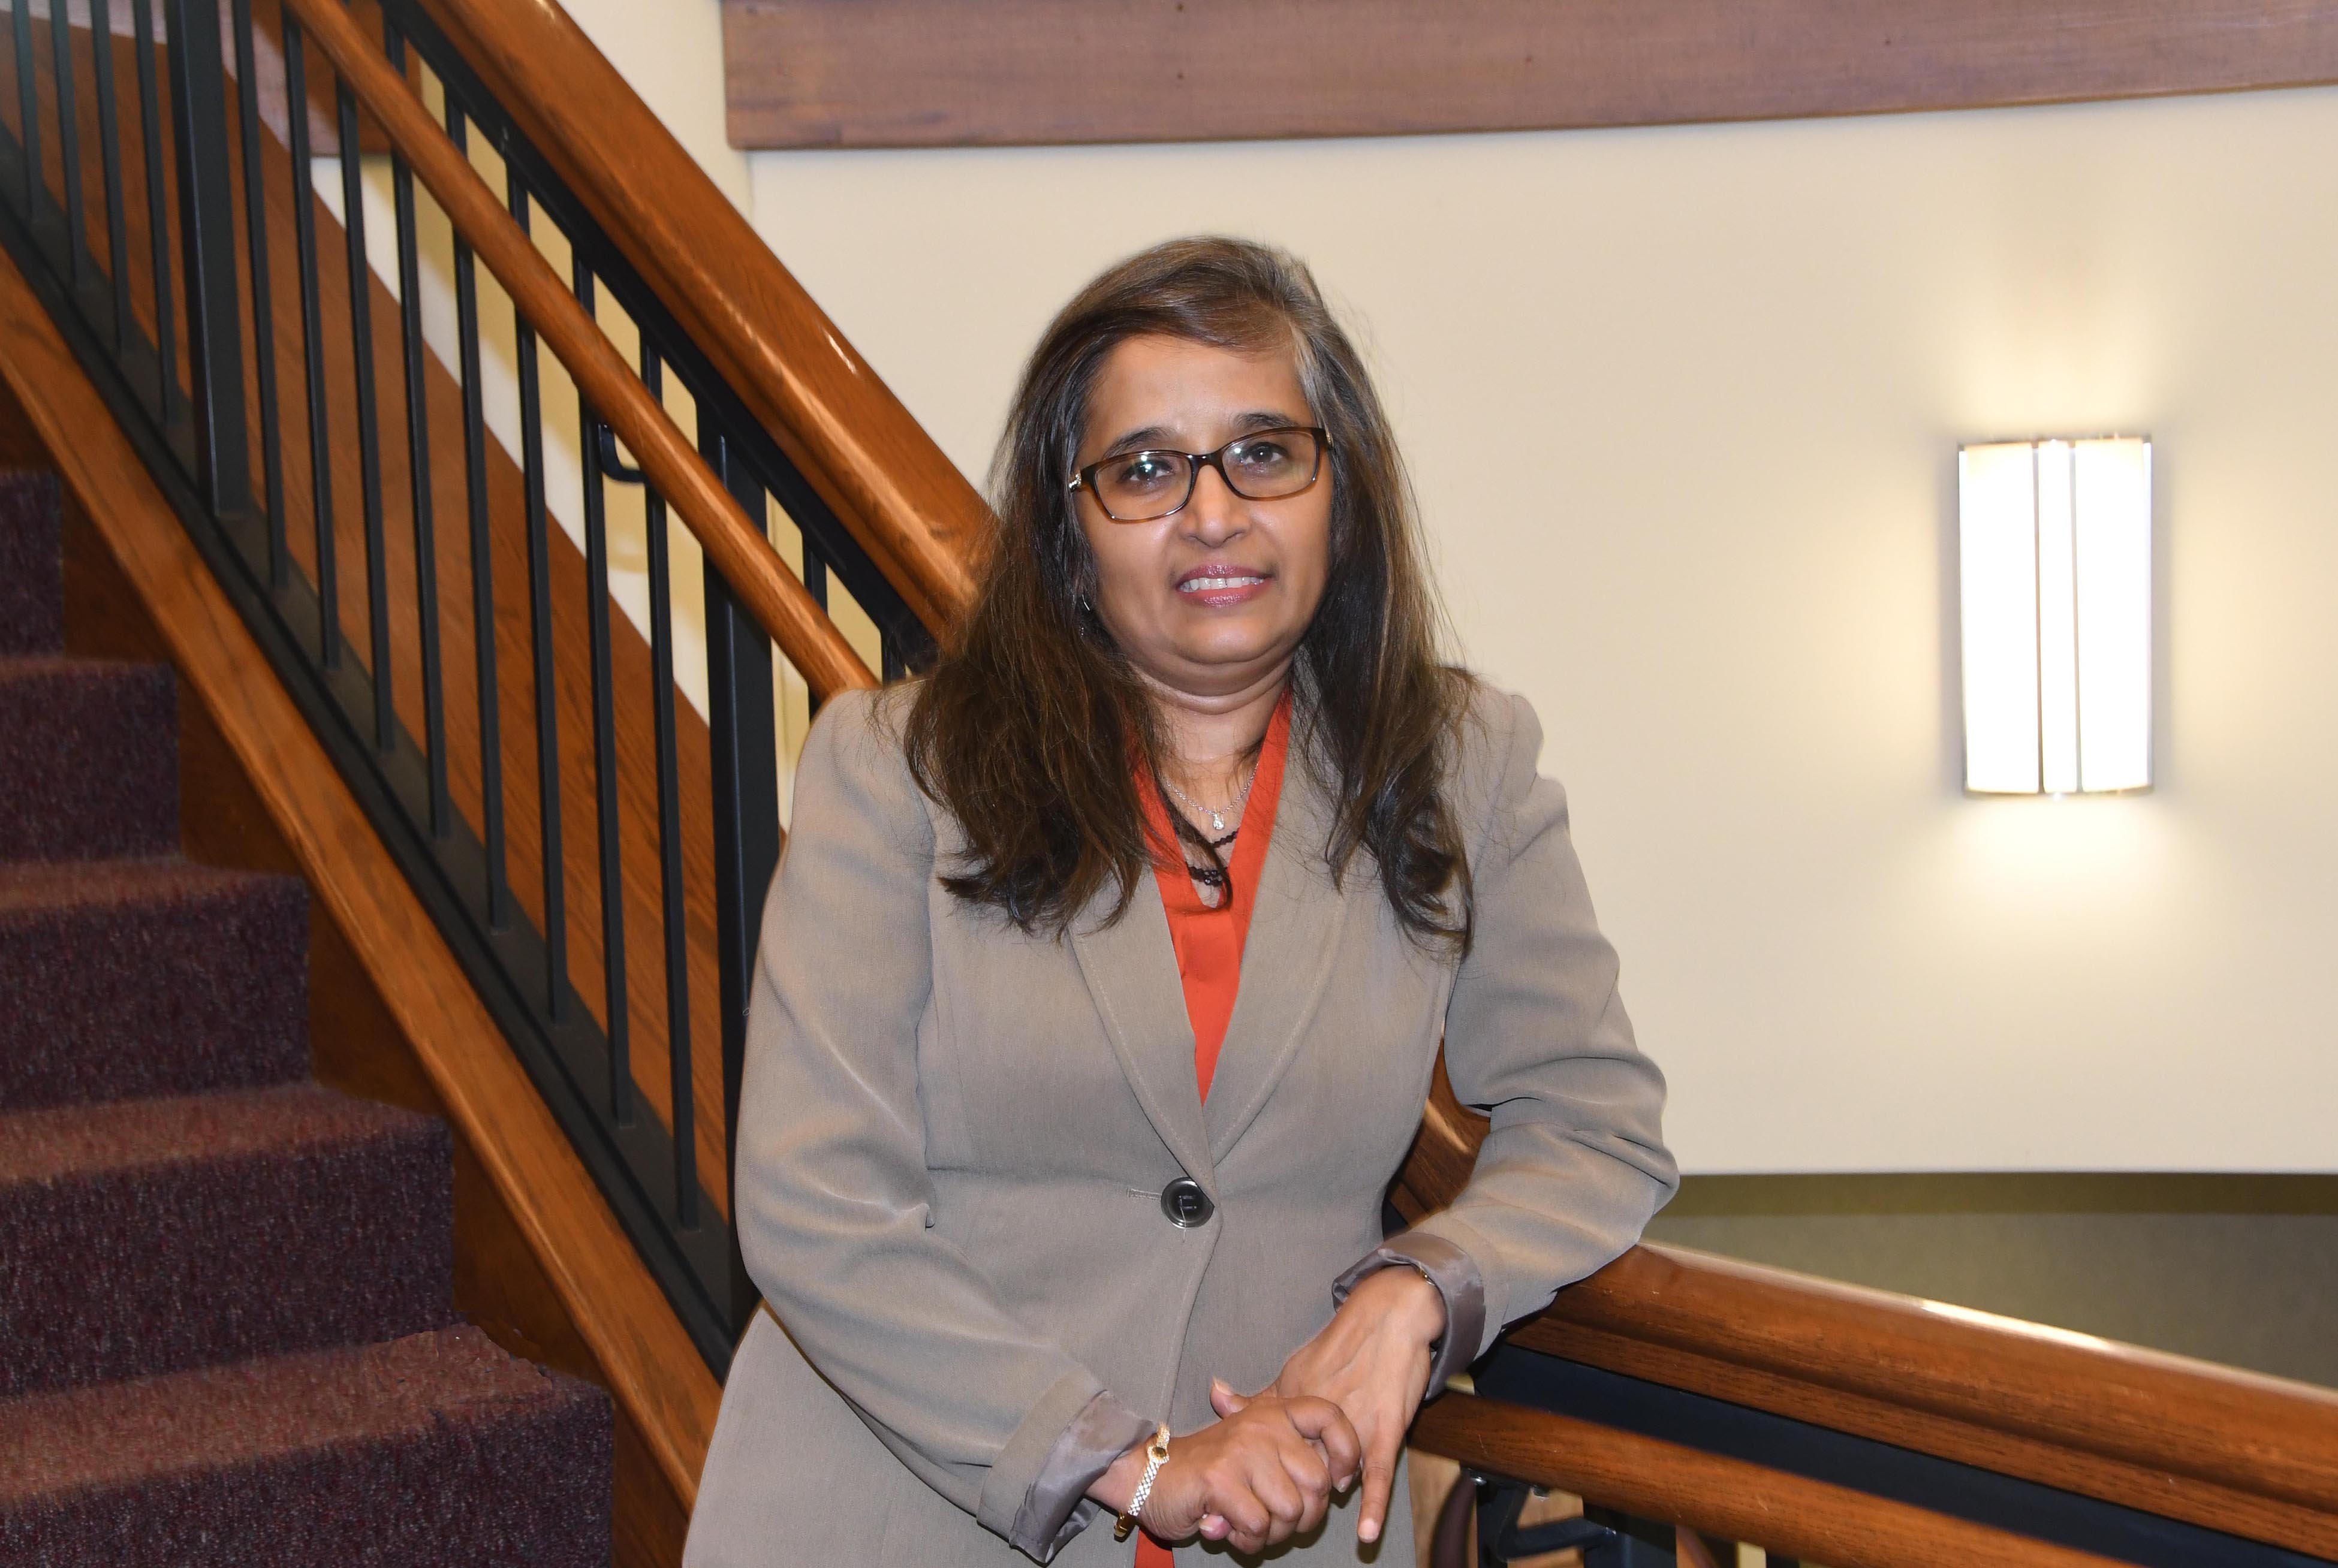 Dr. Nandita Das, professor of finance, will travel as a Fulbright Scholar to India in the spring of 2021 to teach at the Indian Institute of Management Shillong.